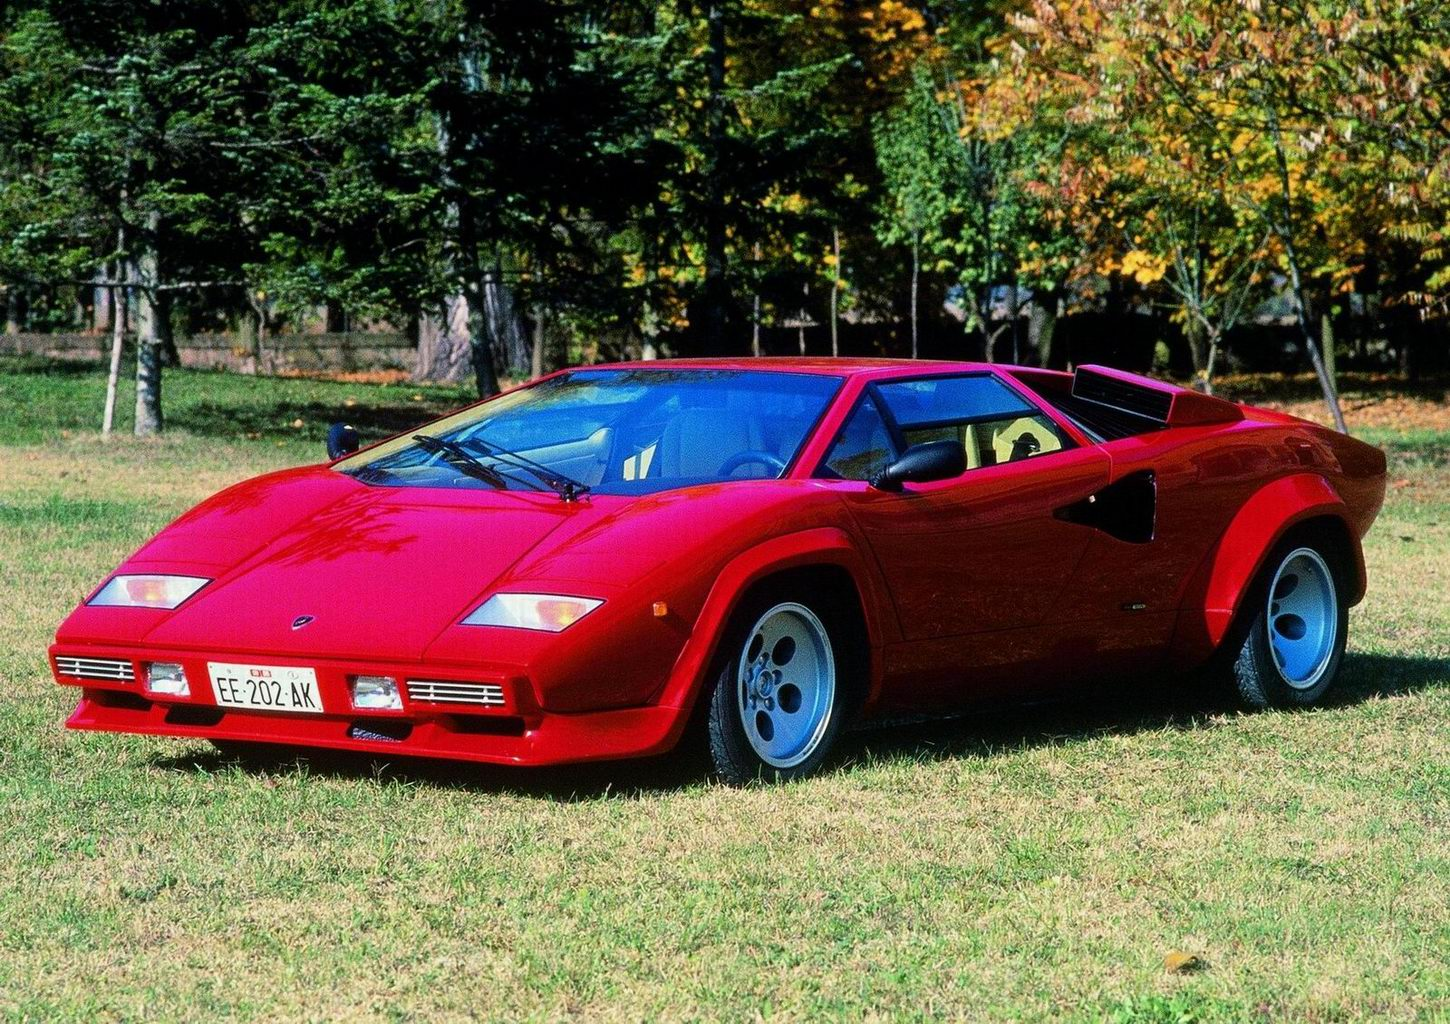 Lamborghini Countach photo 12968